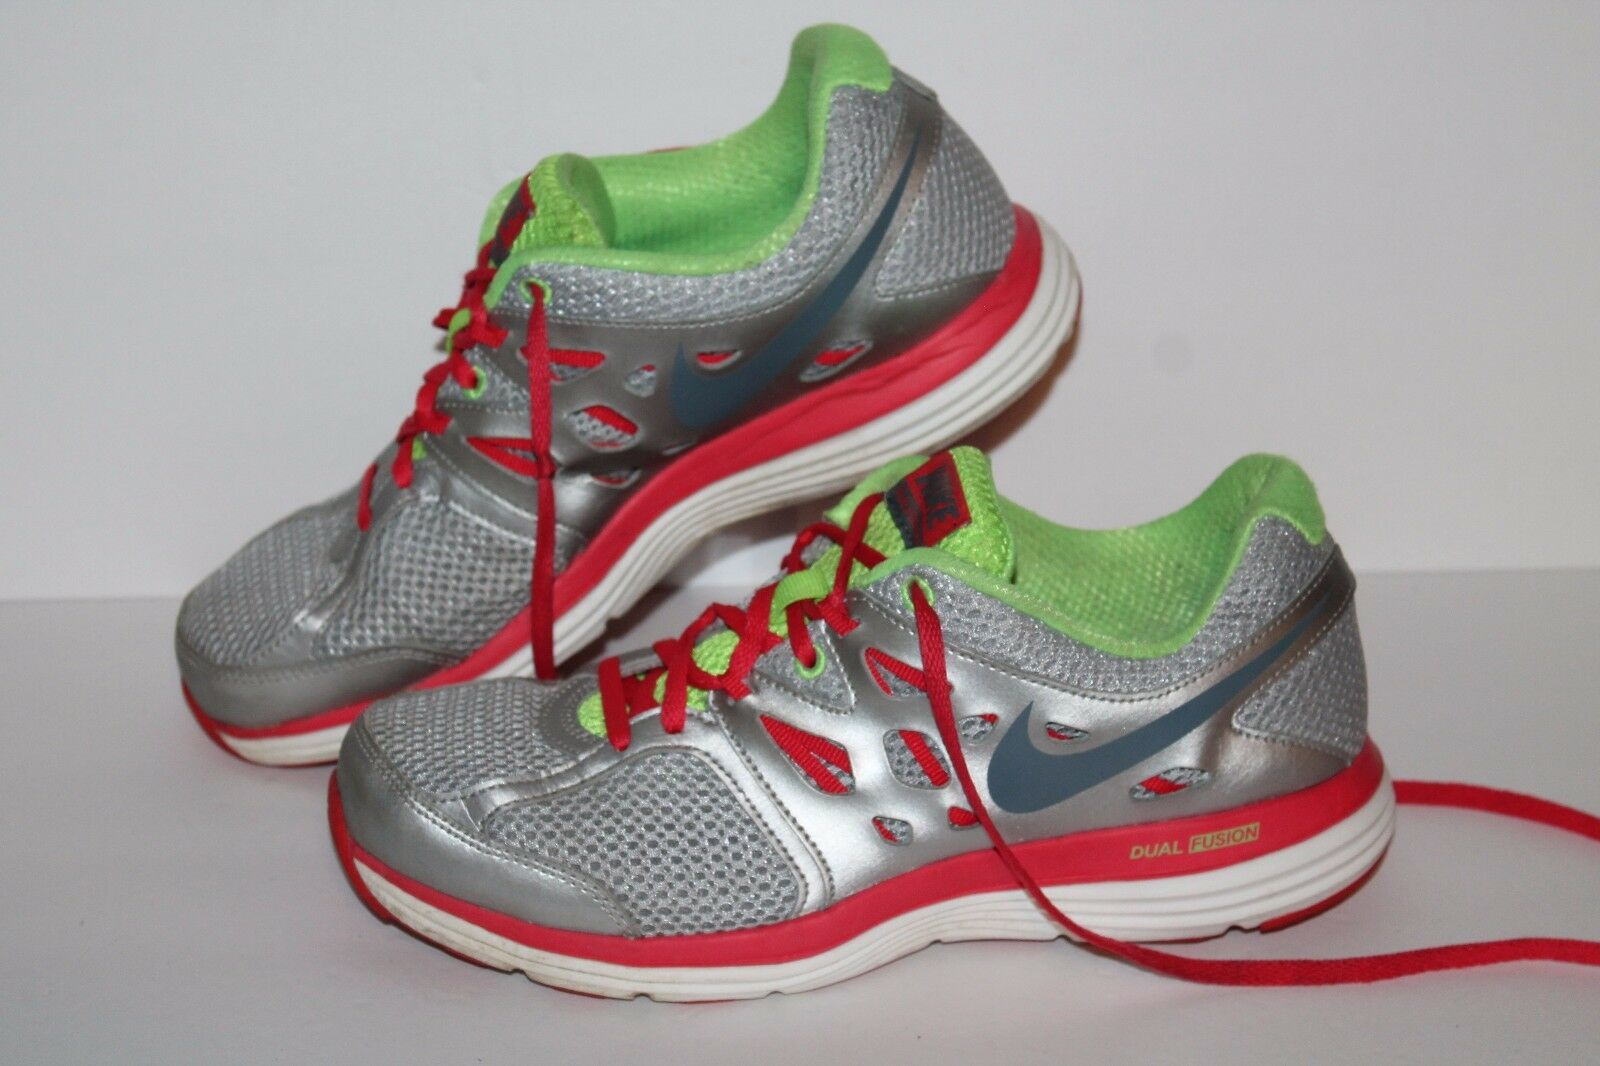 Nike Dual Fusion Lite Running 8.5 Shoes, Silver/Pink/Lime, Women's 8.5 Running 5d4e8c